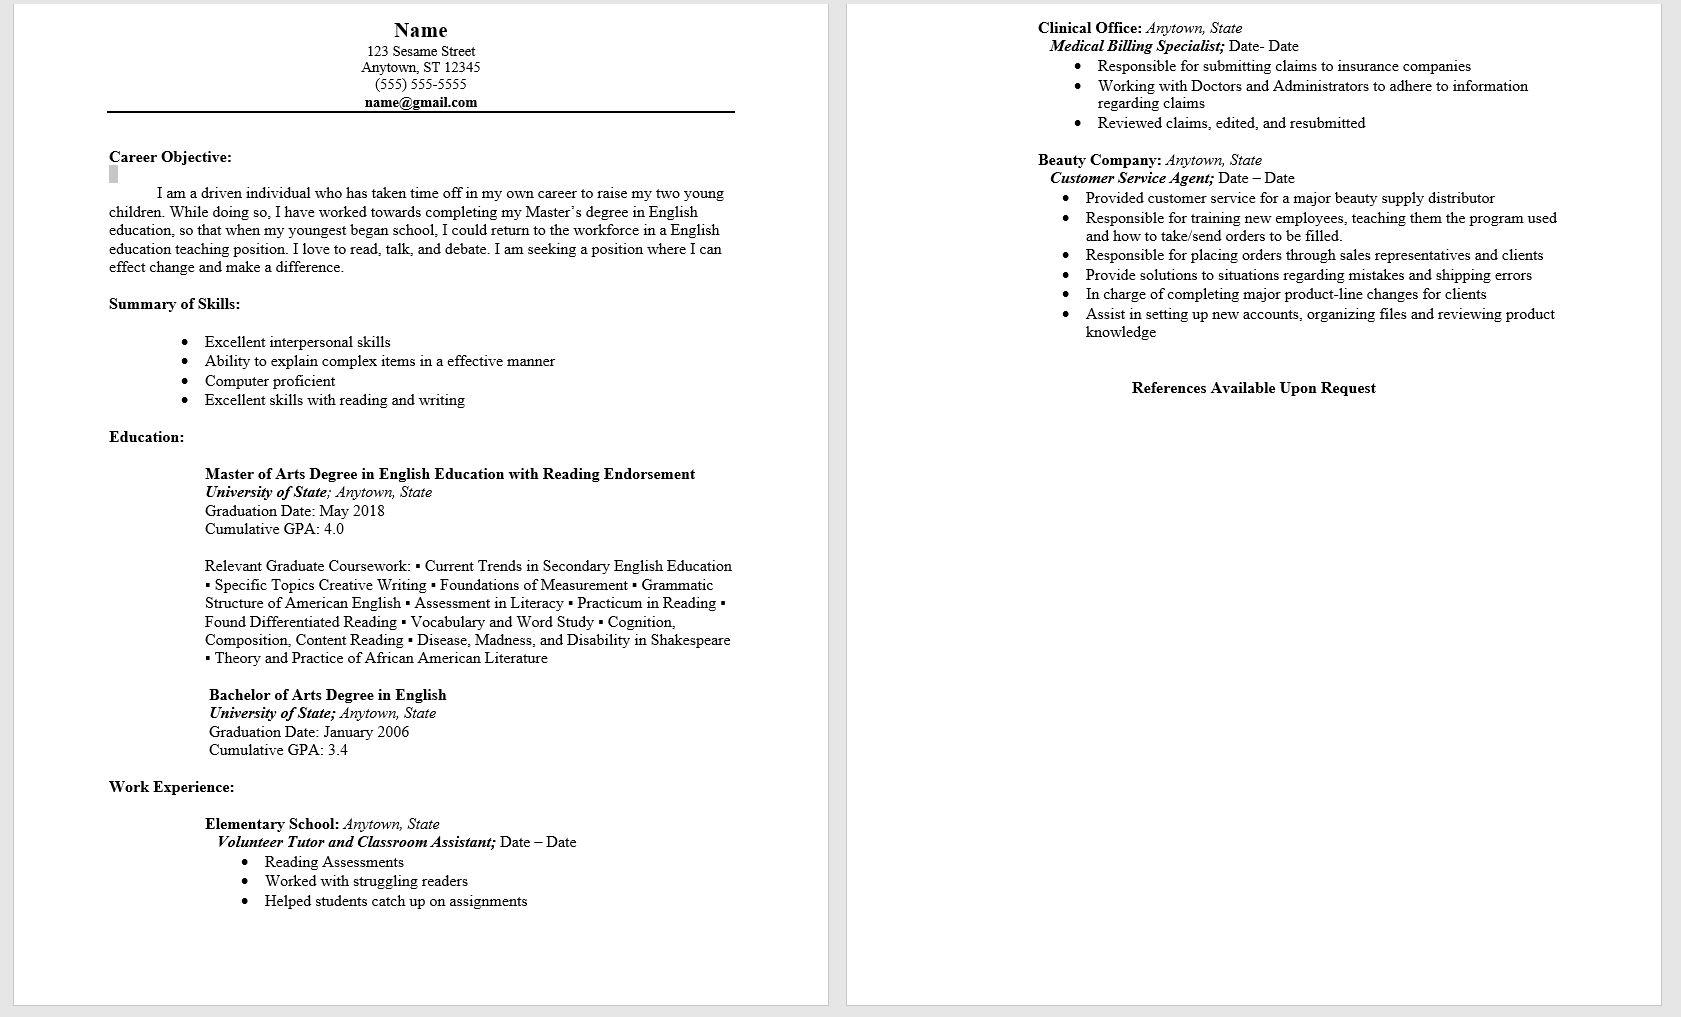 need help with resume have been stay at home mom for the past ten years looking to obtain Resume Resume Out Of Work For Years